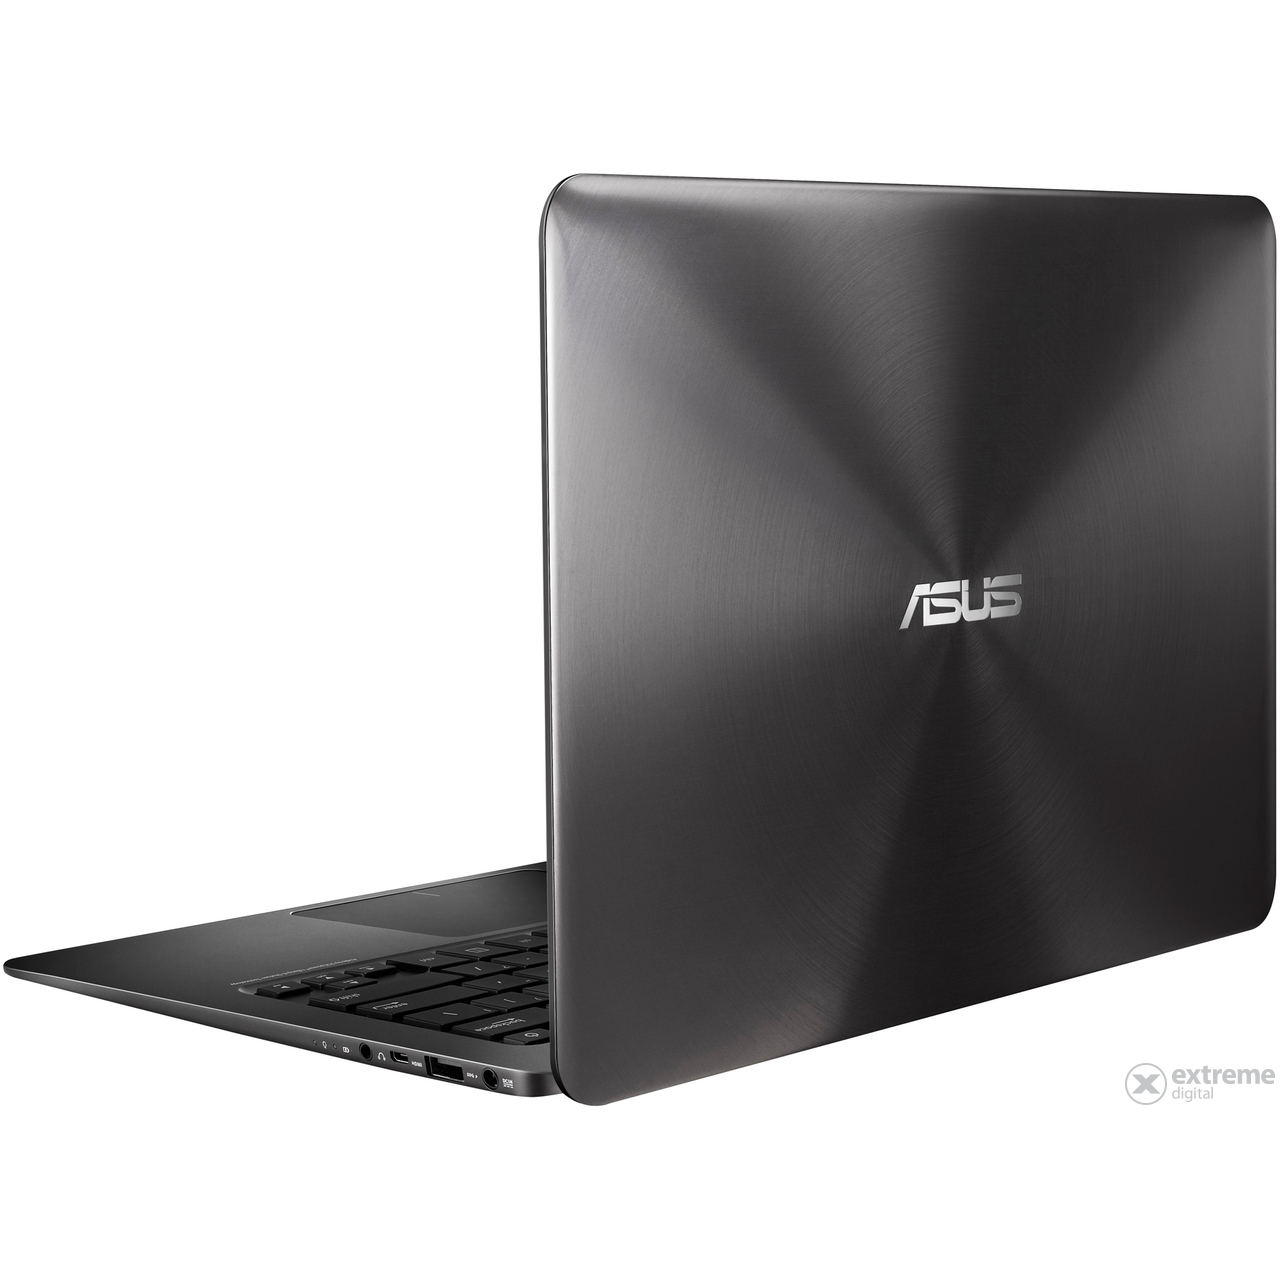 asus-zenbook-ux305la-fb019t-notebook-windows-10-fekete_cbfc9062.jpg